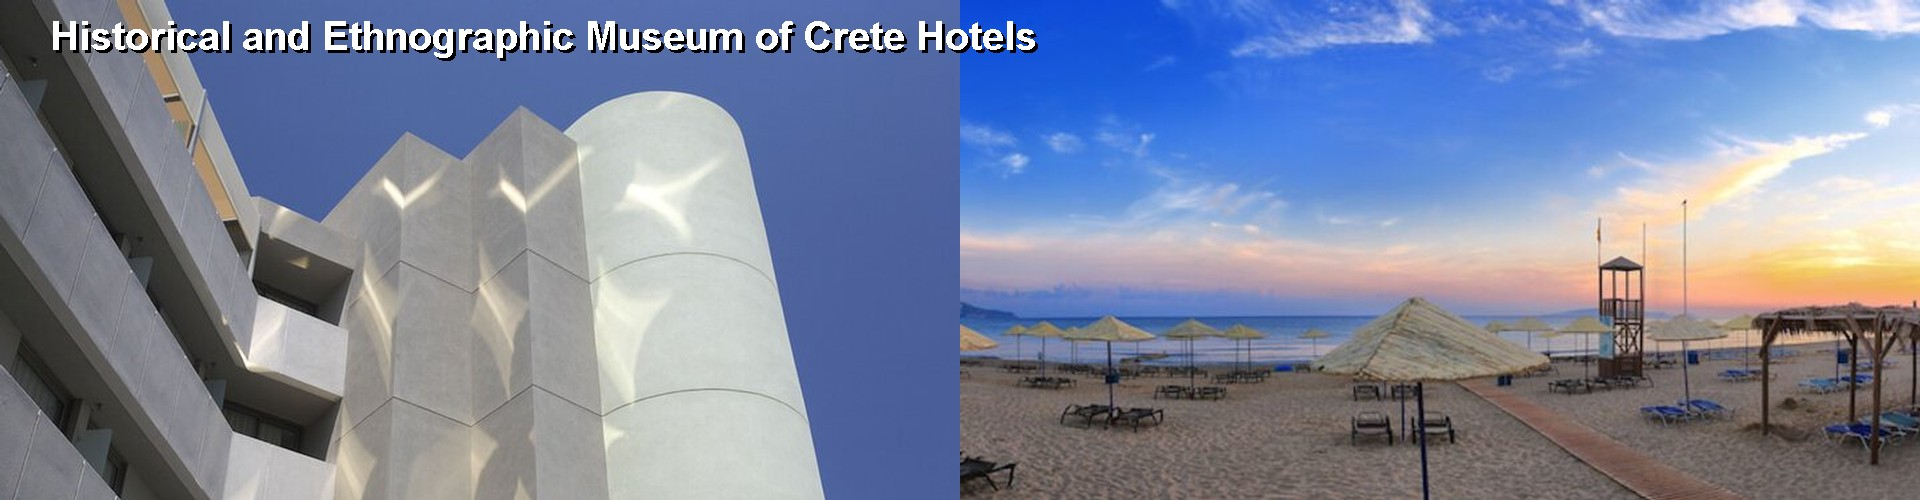 5 Best Hotels near Historical and Ethnographic Museum of Crete